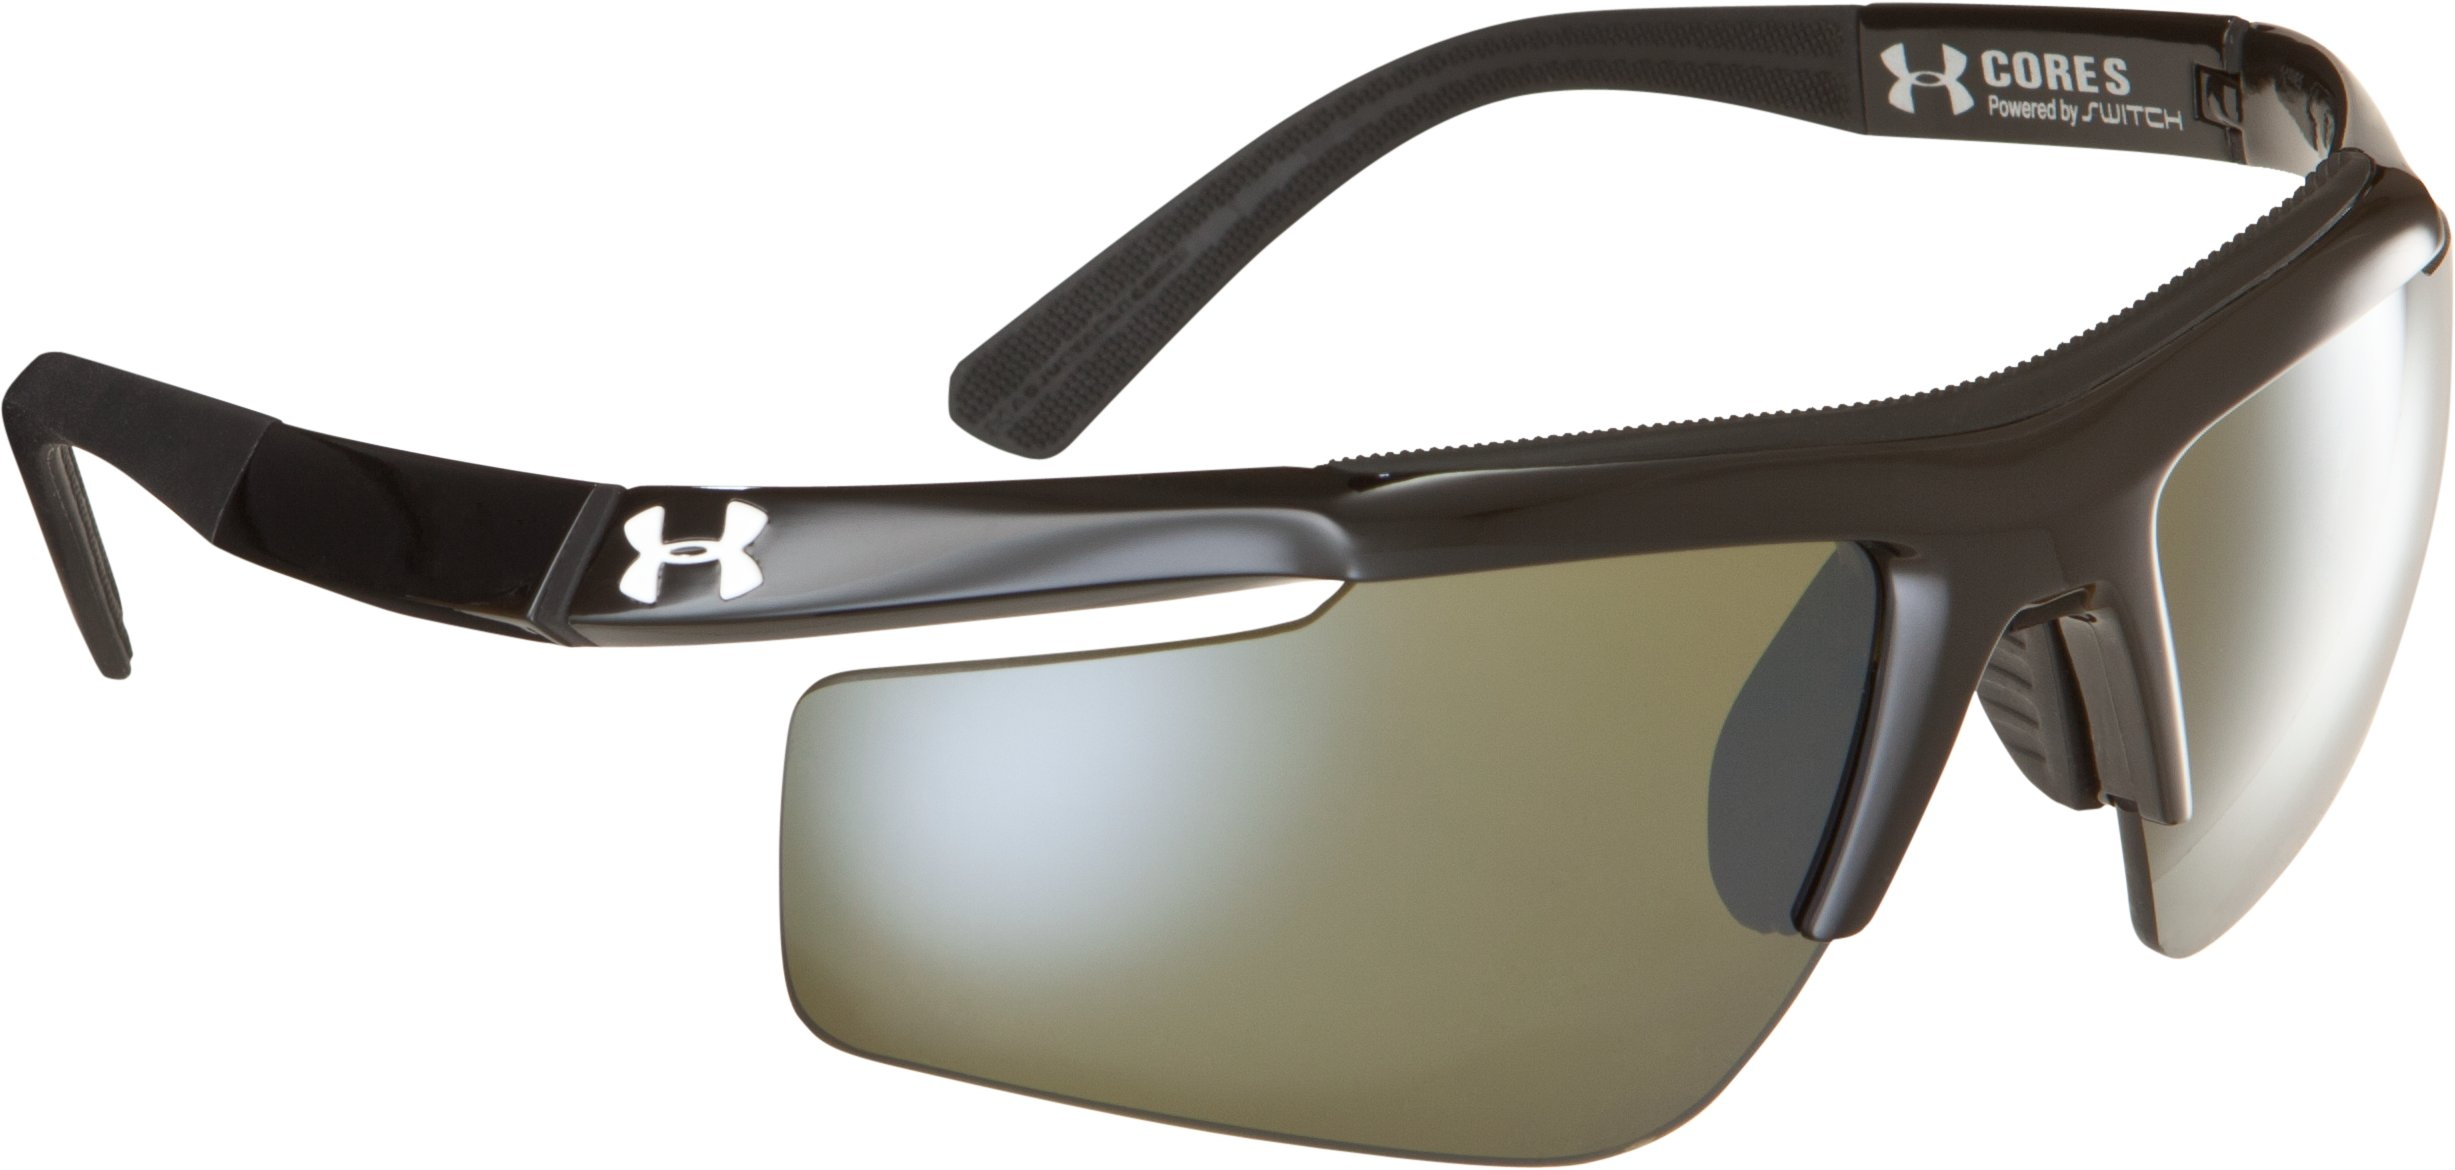 UA Core Switch Sunglasses, Shiny Black